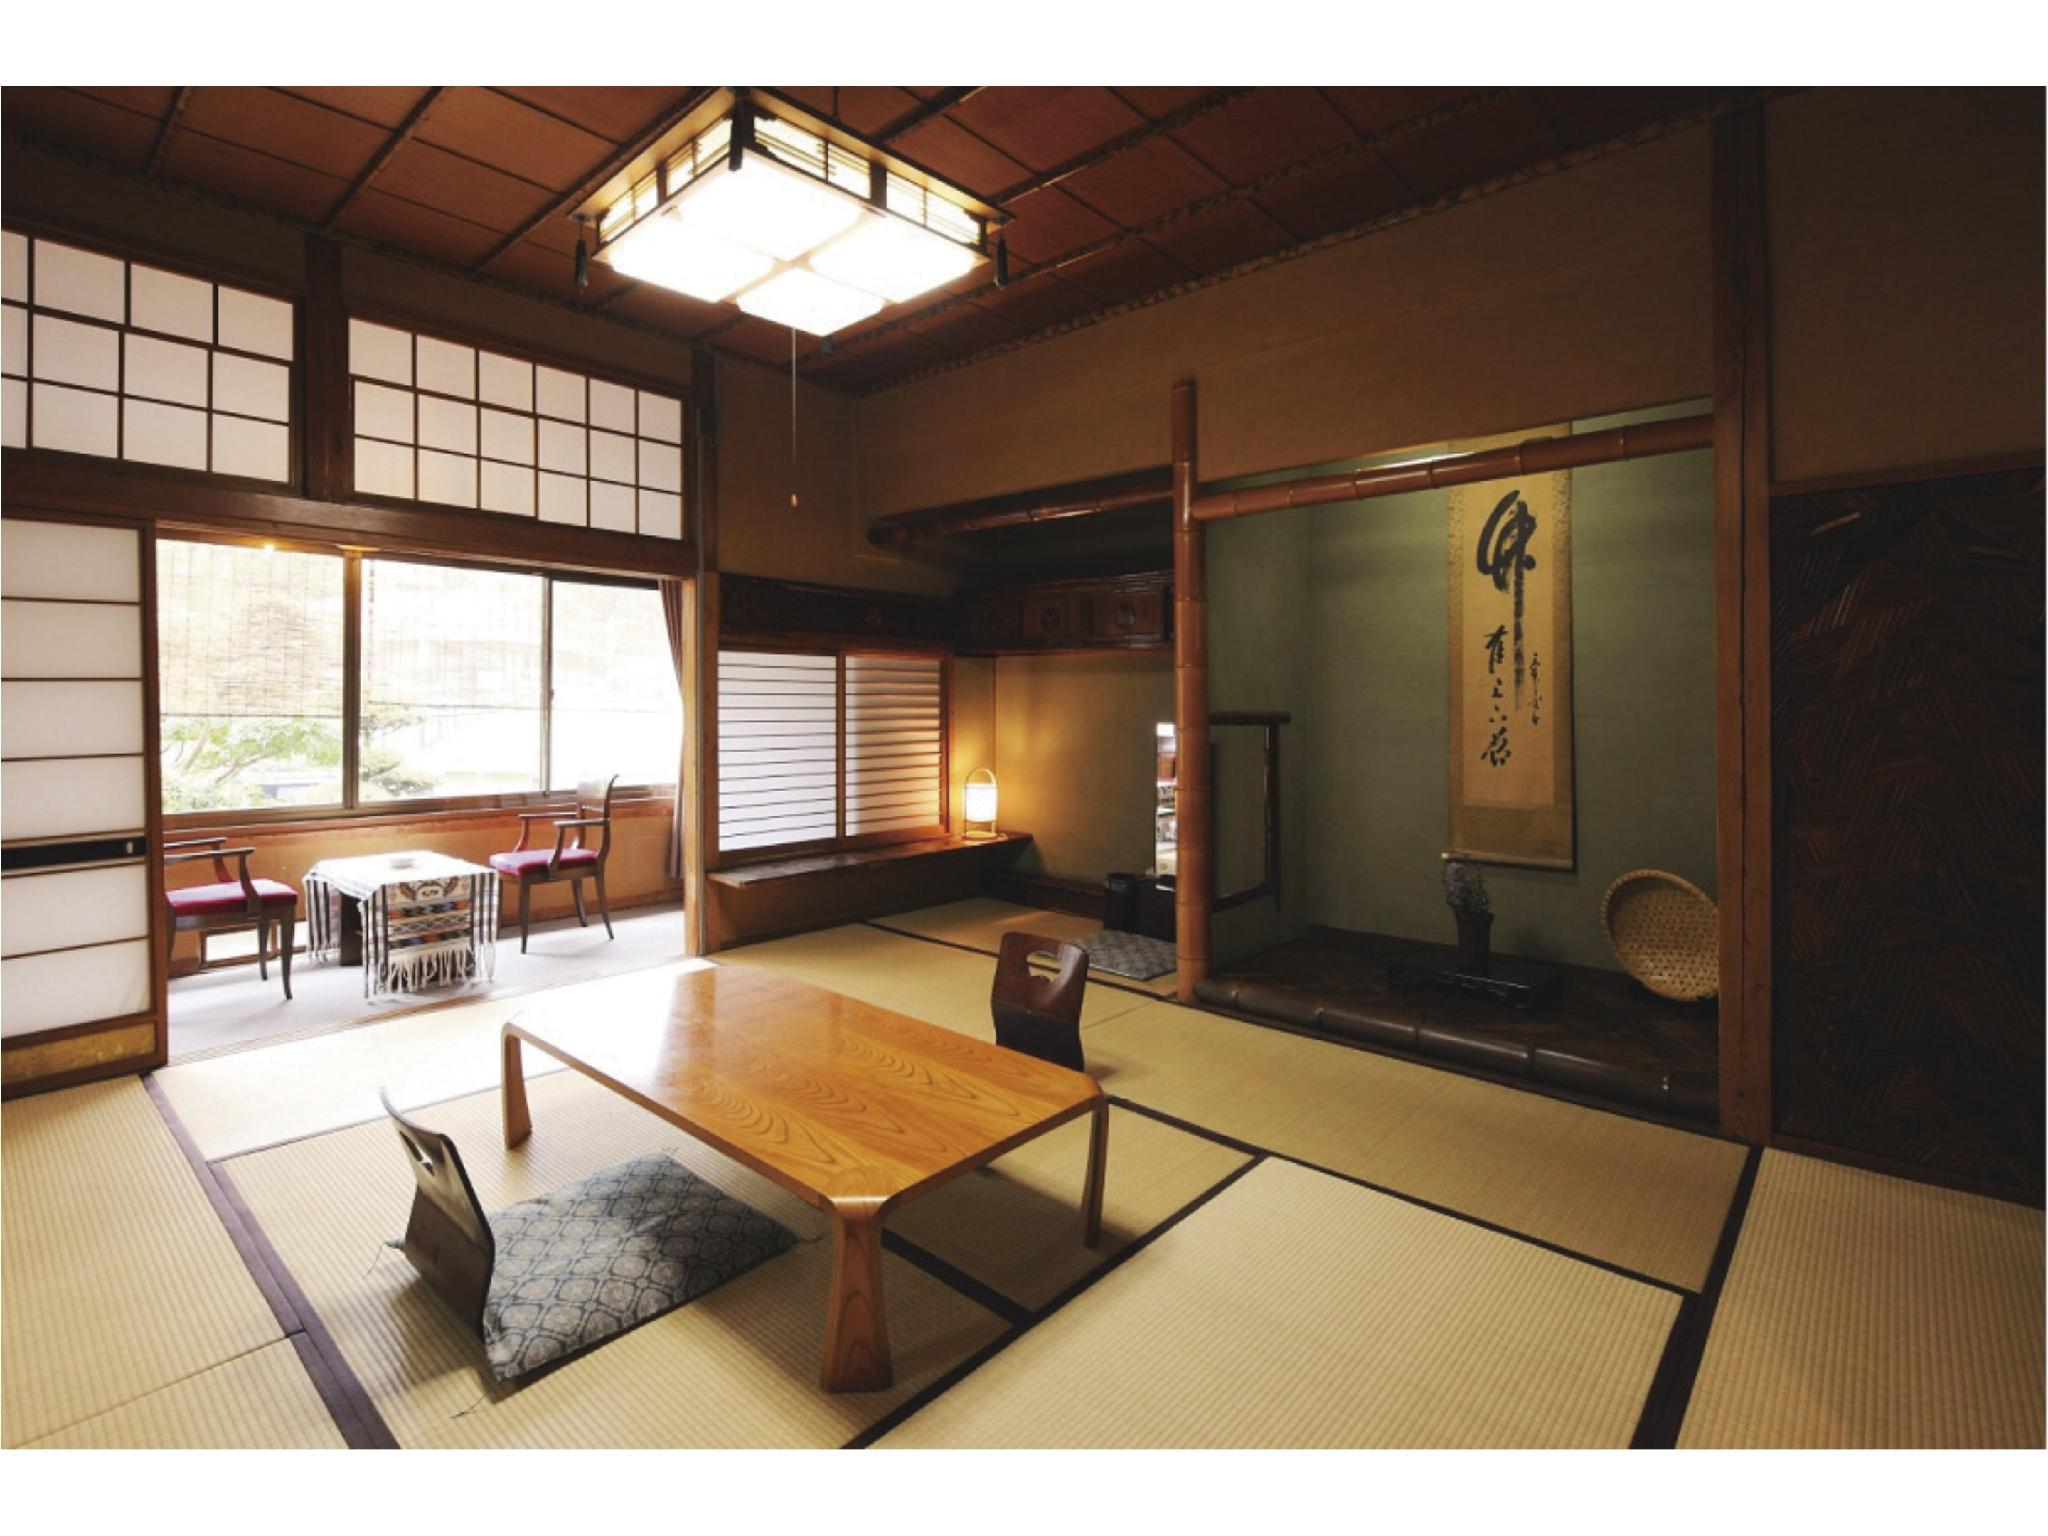 和式房10-14帖榻榻米(無浴室) (Japanese-style Room (10-14 tatami)*No bath in room)